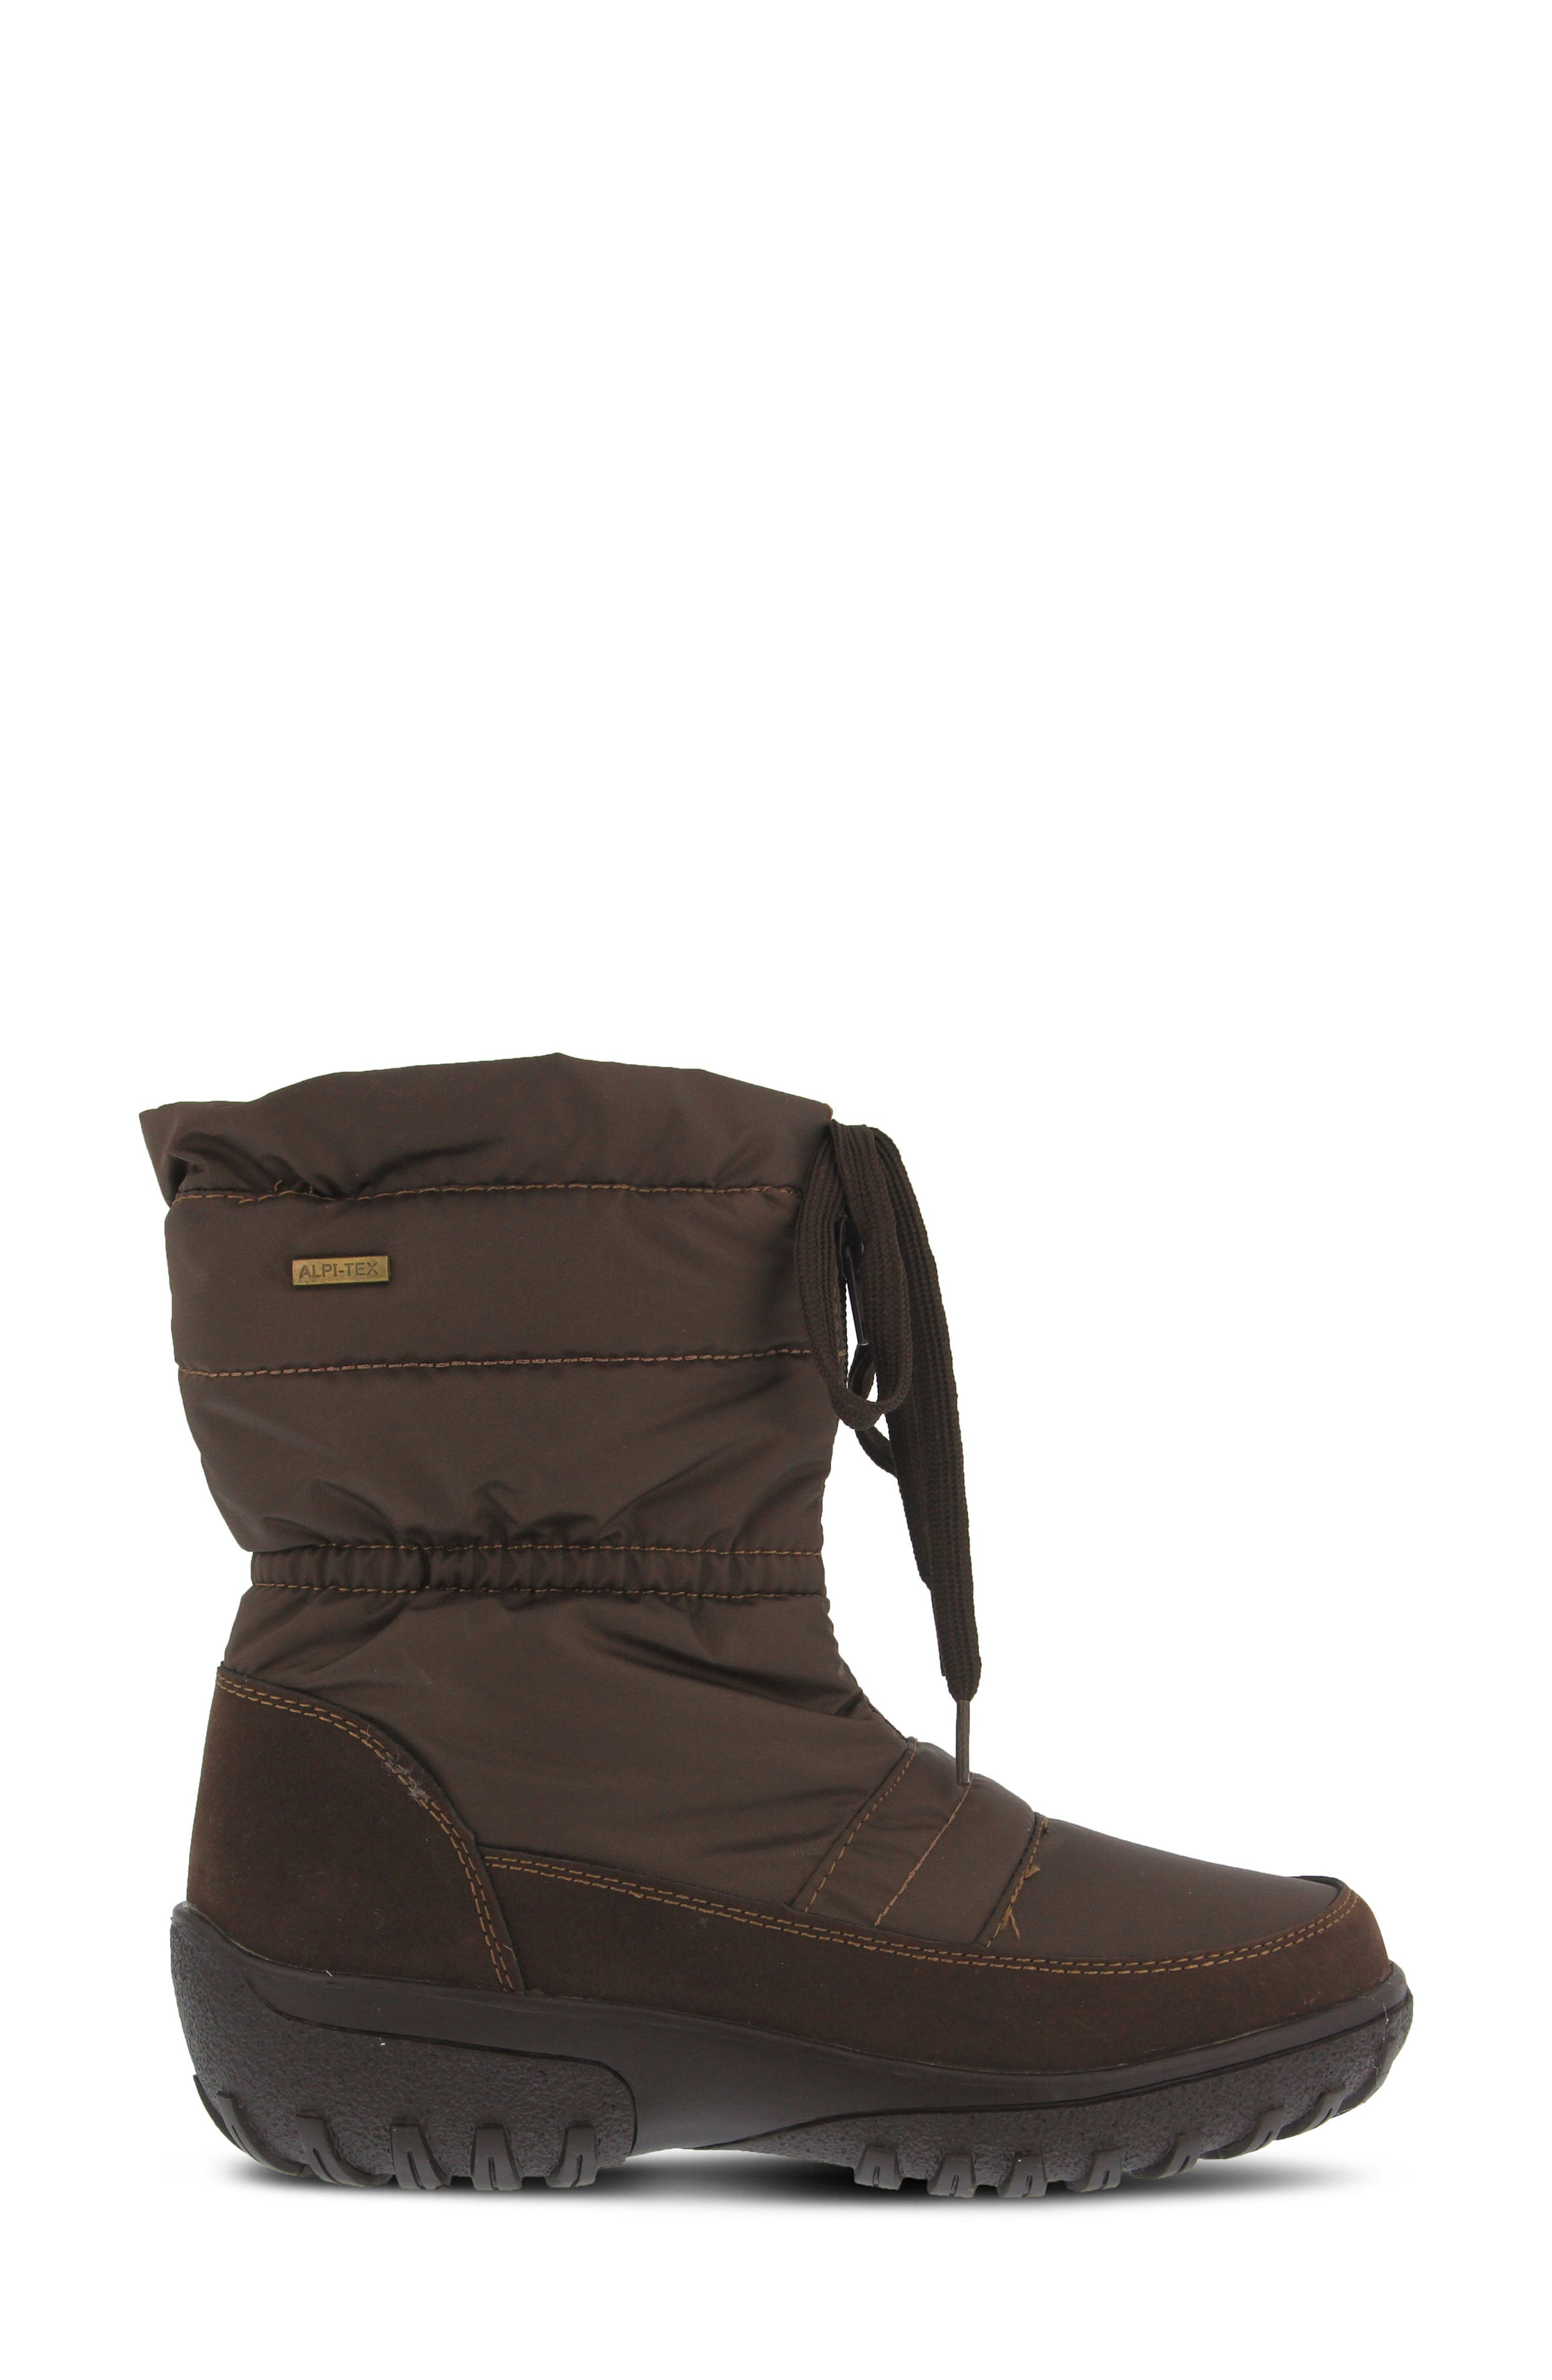 Alternate Image 3  - Spring Step Lucerne Waterproof Drawstring Boot (Women)